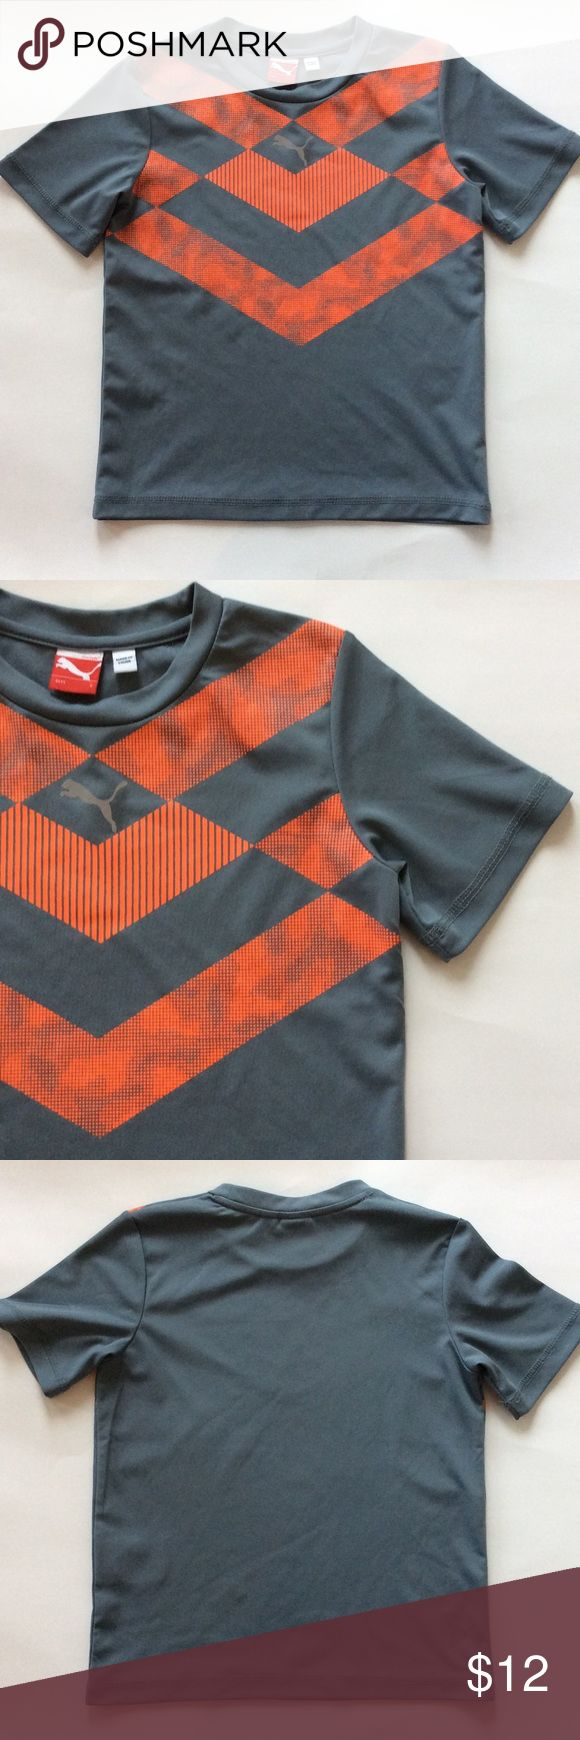 👫Puma Sports Tee Puma Sports Tee. Grey with orange detail. 100% polyester. Size 6. Excellent condition. Puma Shirts & Tops Tees - Short Sleeve